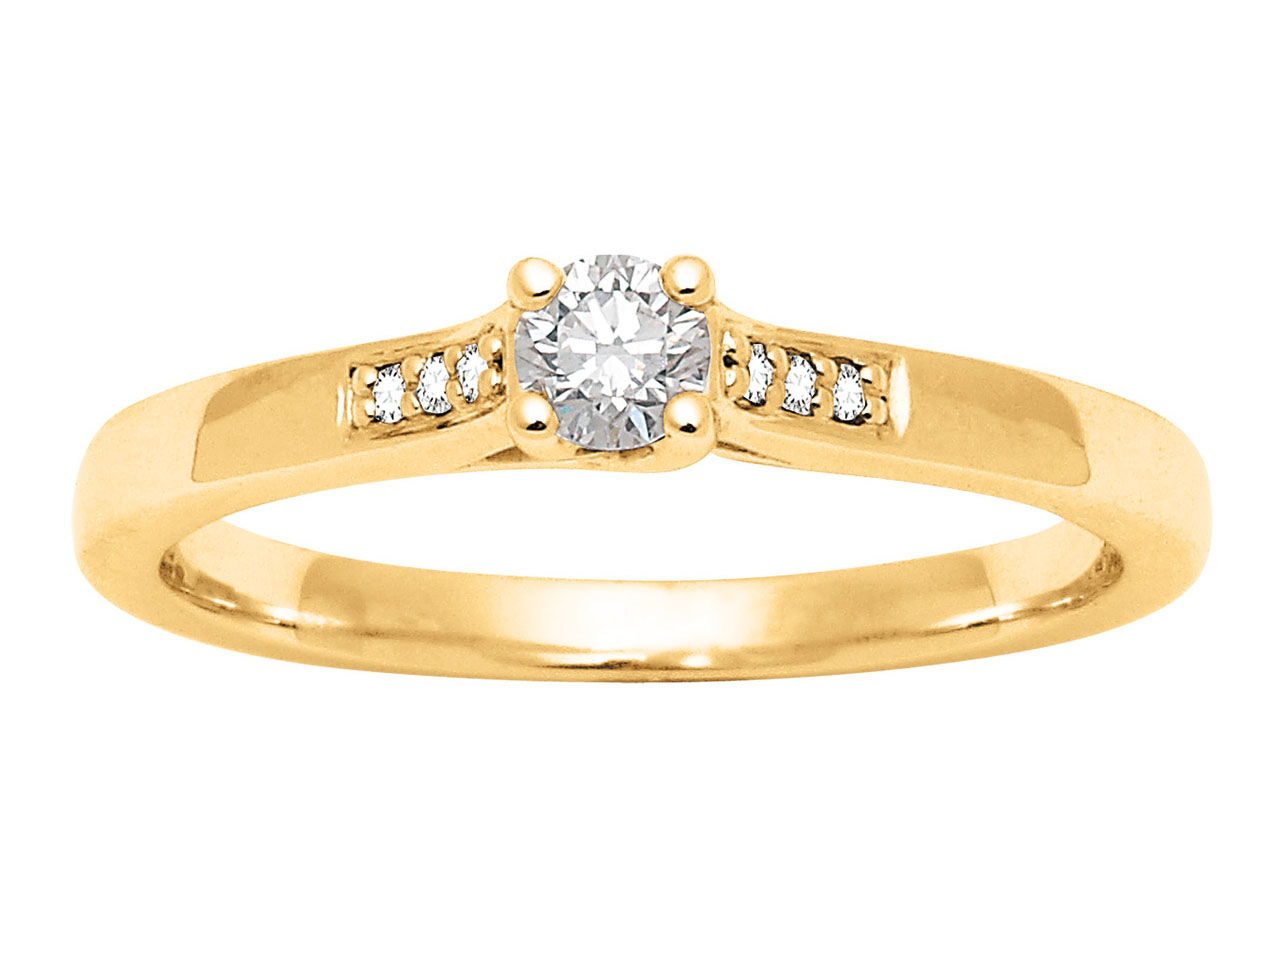 Solitaire accompagné, Or jaune 18 k, Dts 0,18 ct, doigt 50